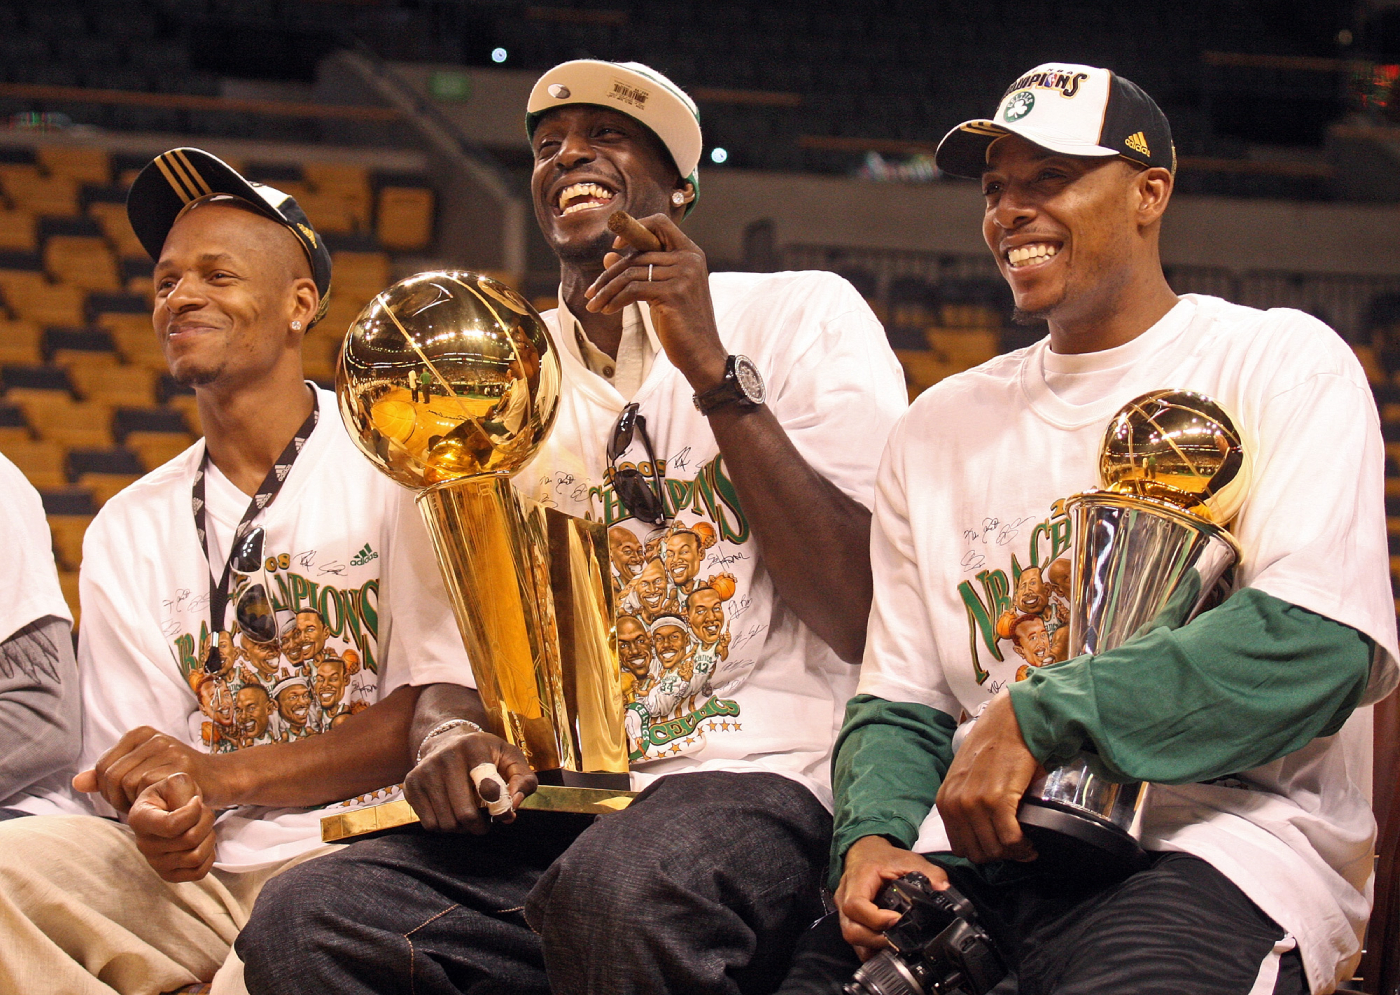 The Boston Celtics have one of the richest traditions in the NBA. So, how many NBA championships have the Celtics won?